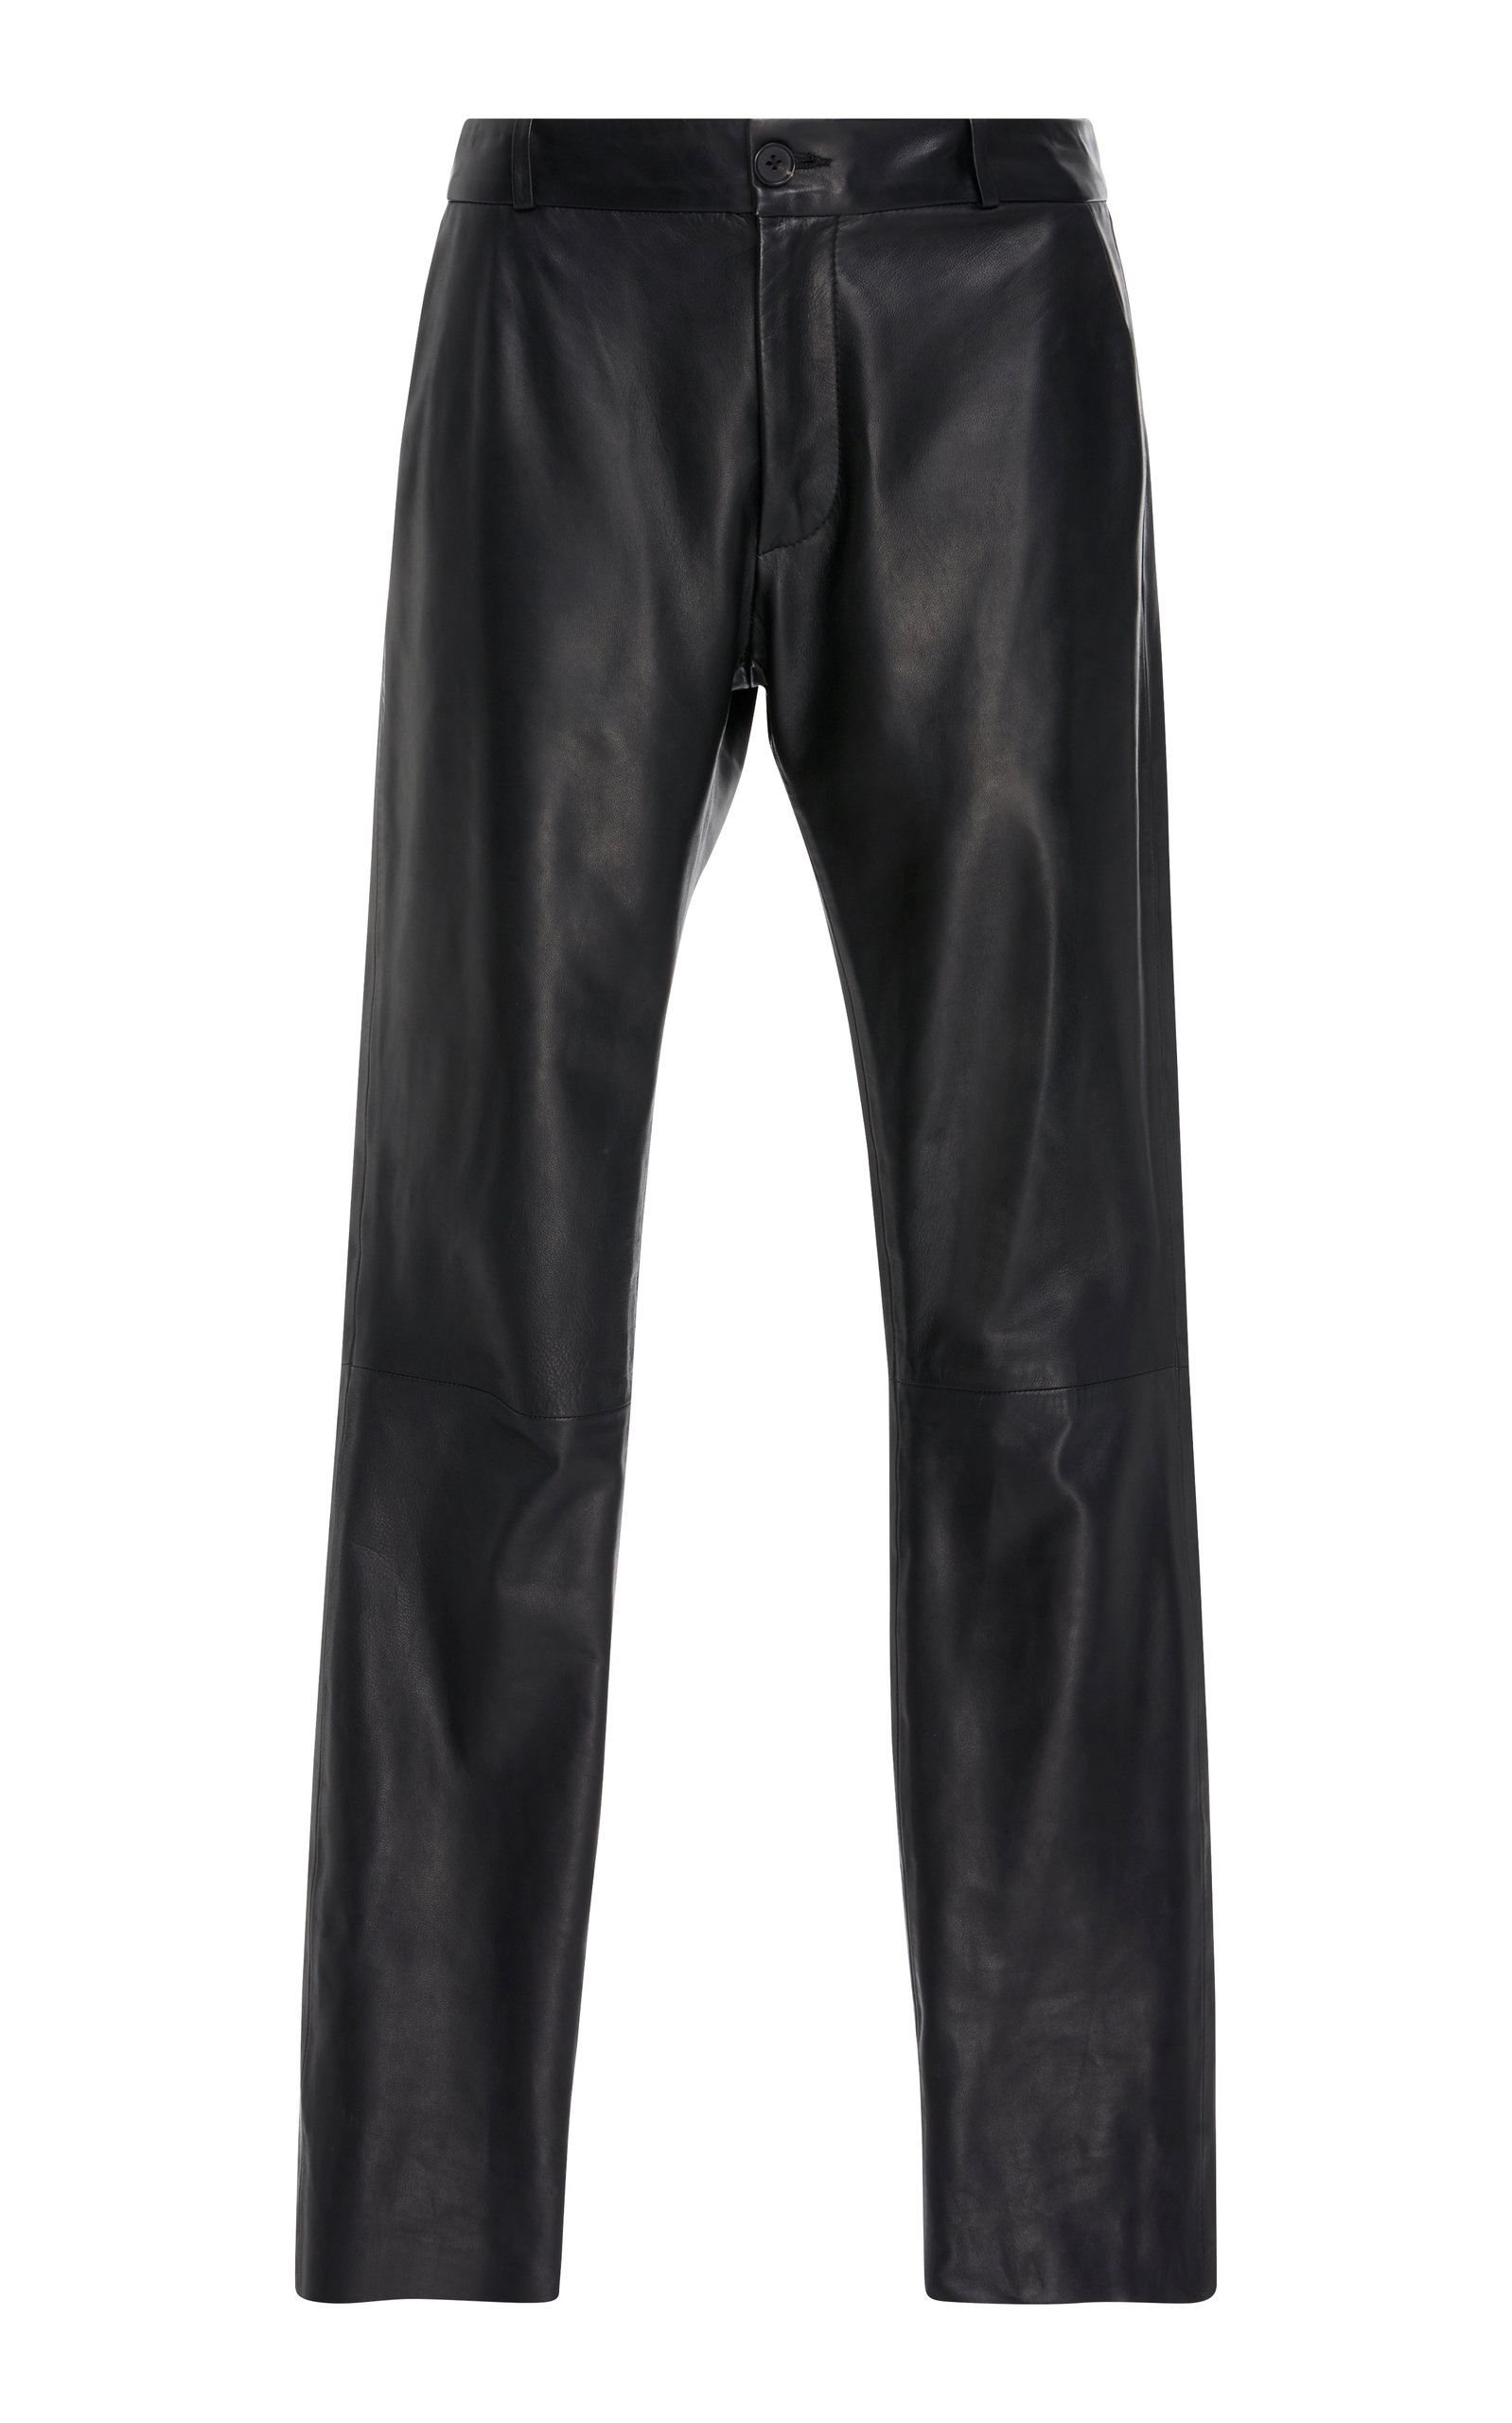 East Hampton Leather Slim Pants - Black Size 0